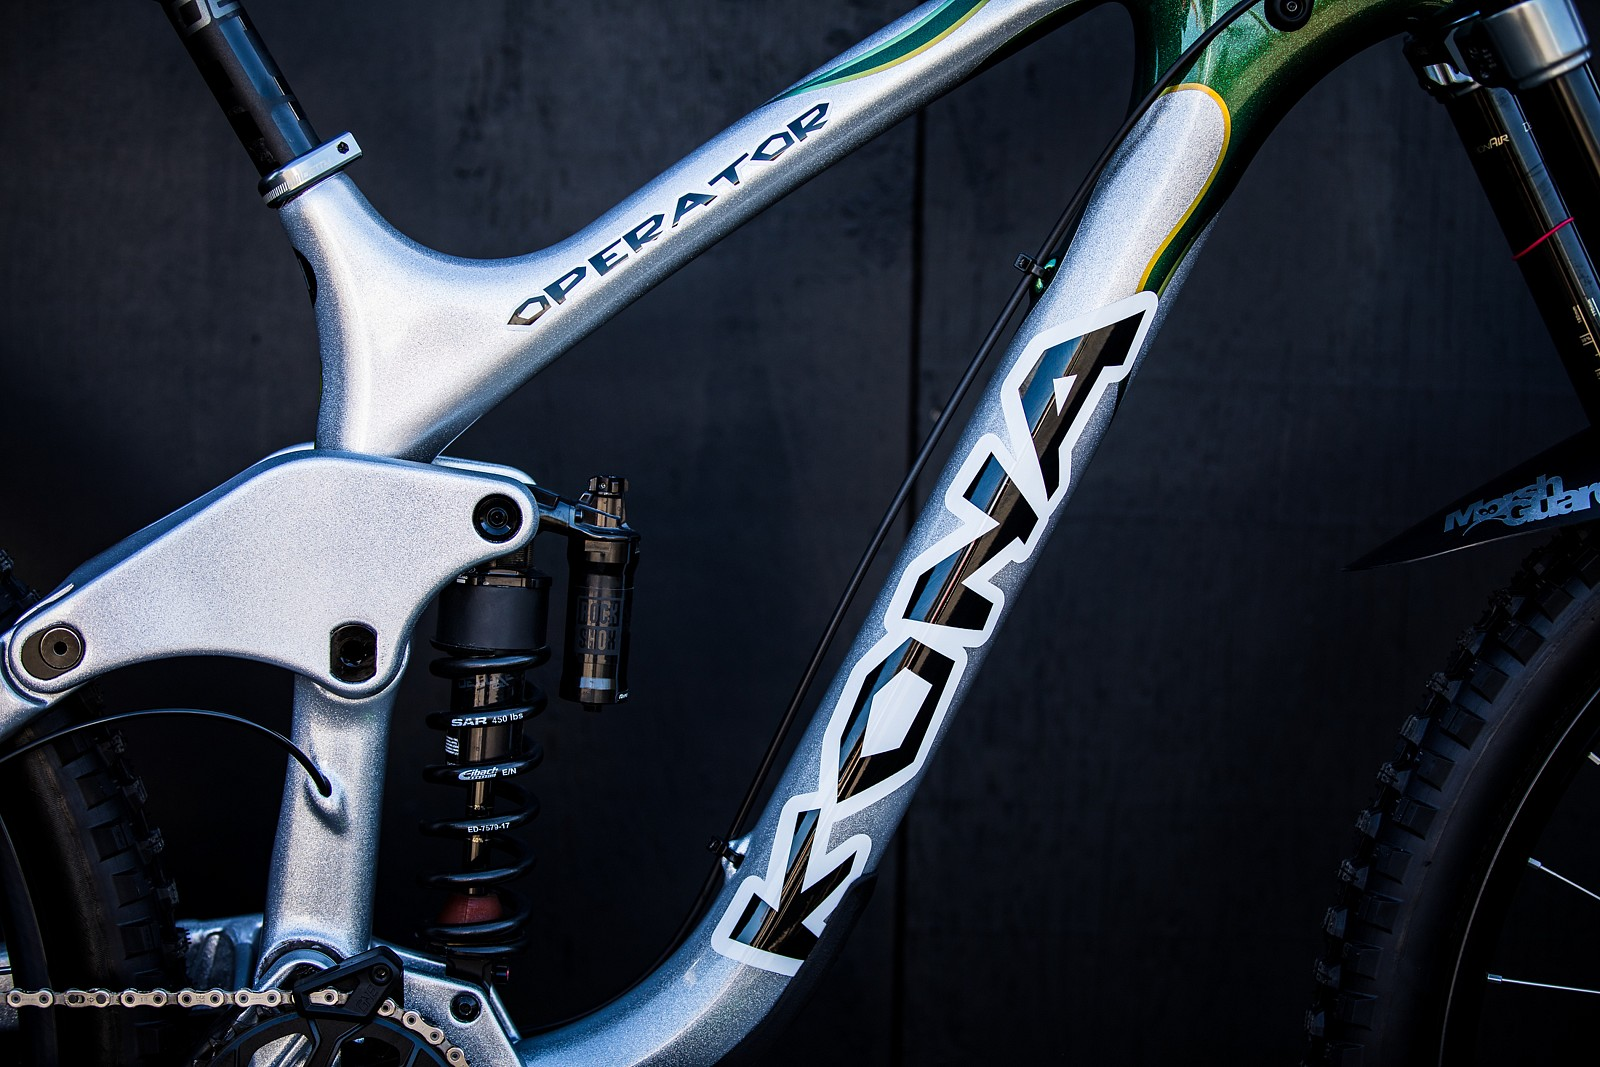 Connor Fearon's Kona Operator at 2019 Worlds MSA - Connor Fearon's Kona Operator at 2019 Worlds MSA - Mountain Biking Pictures - Vital MTB